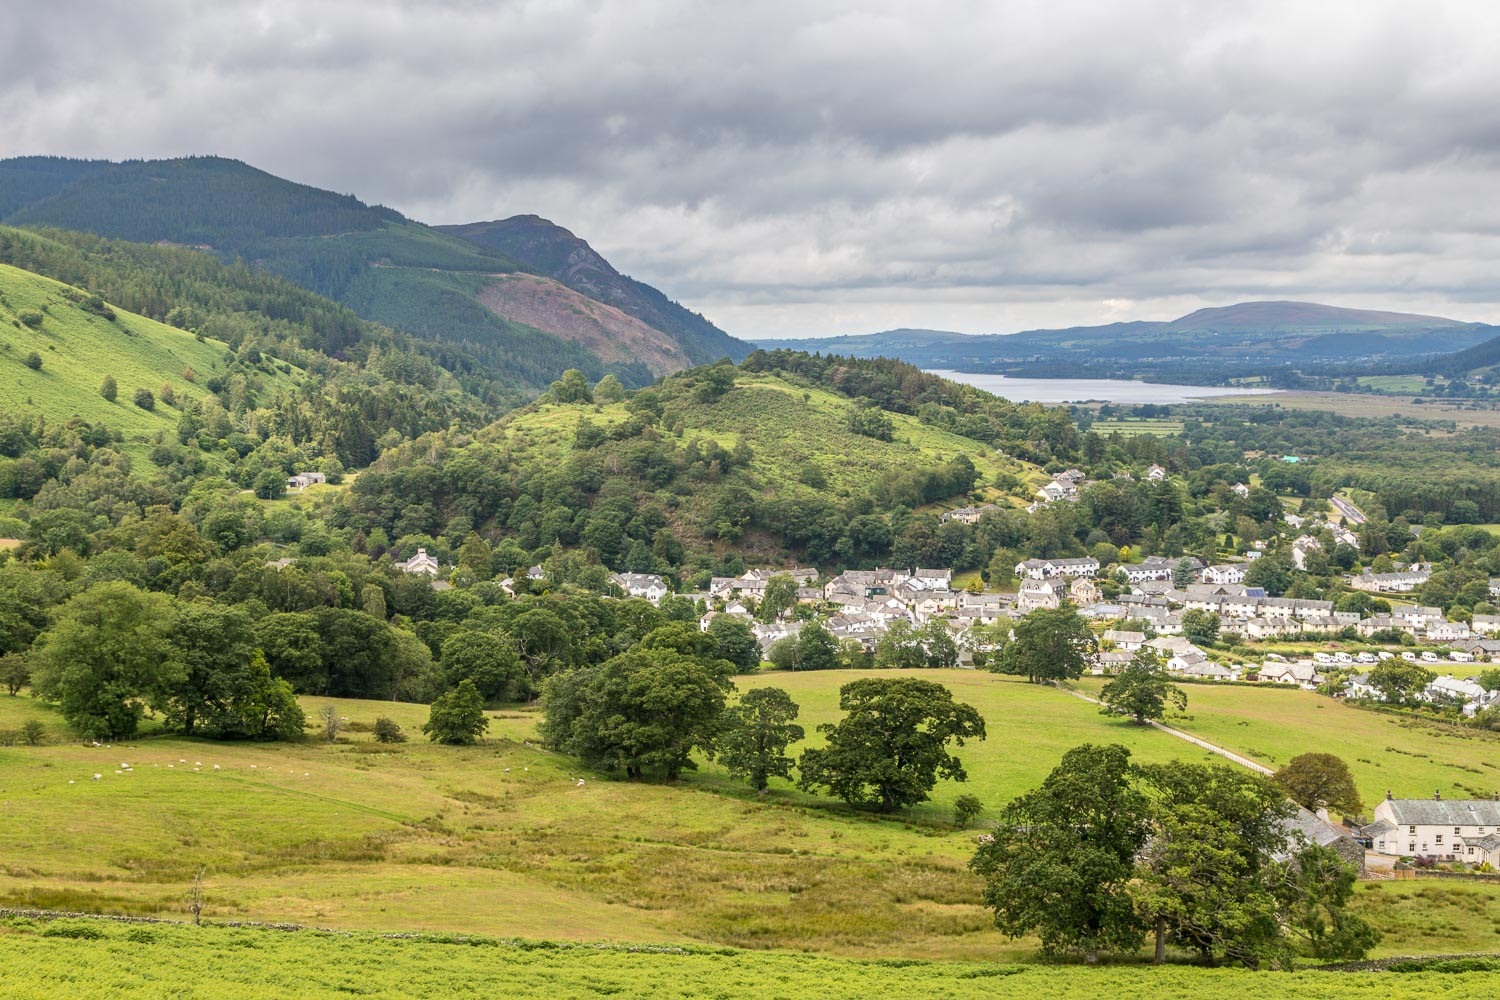 Braithwaite,  Braithwaite How and Bassenthwaite Lake